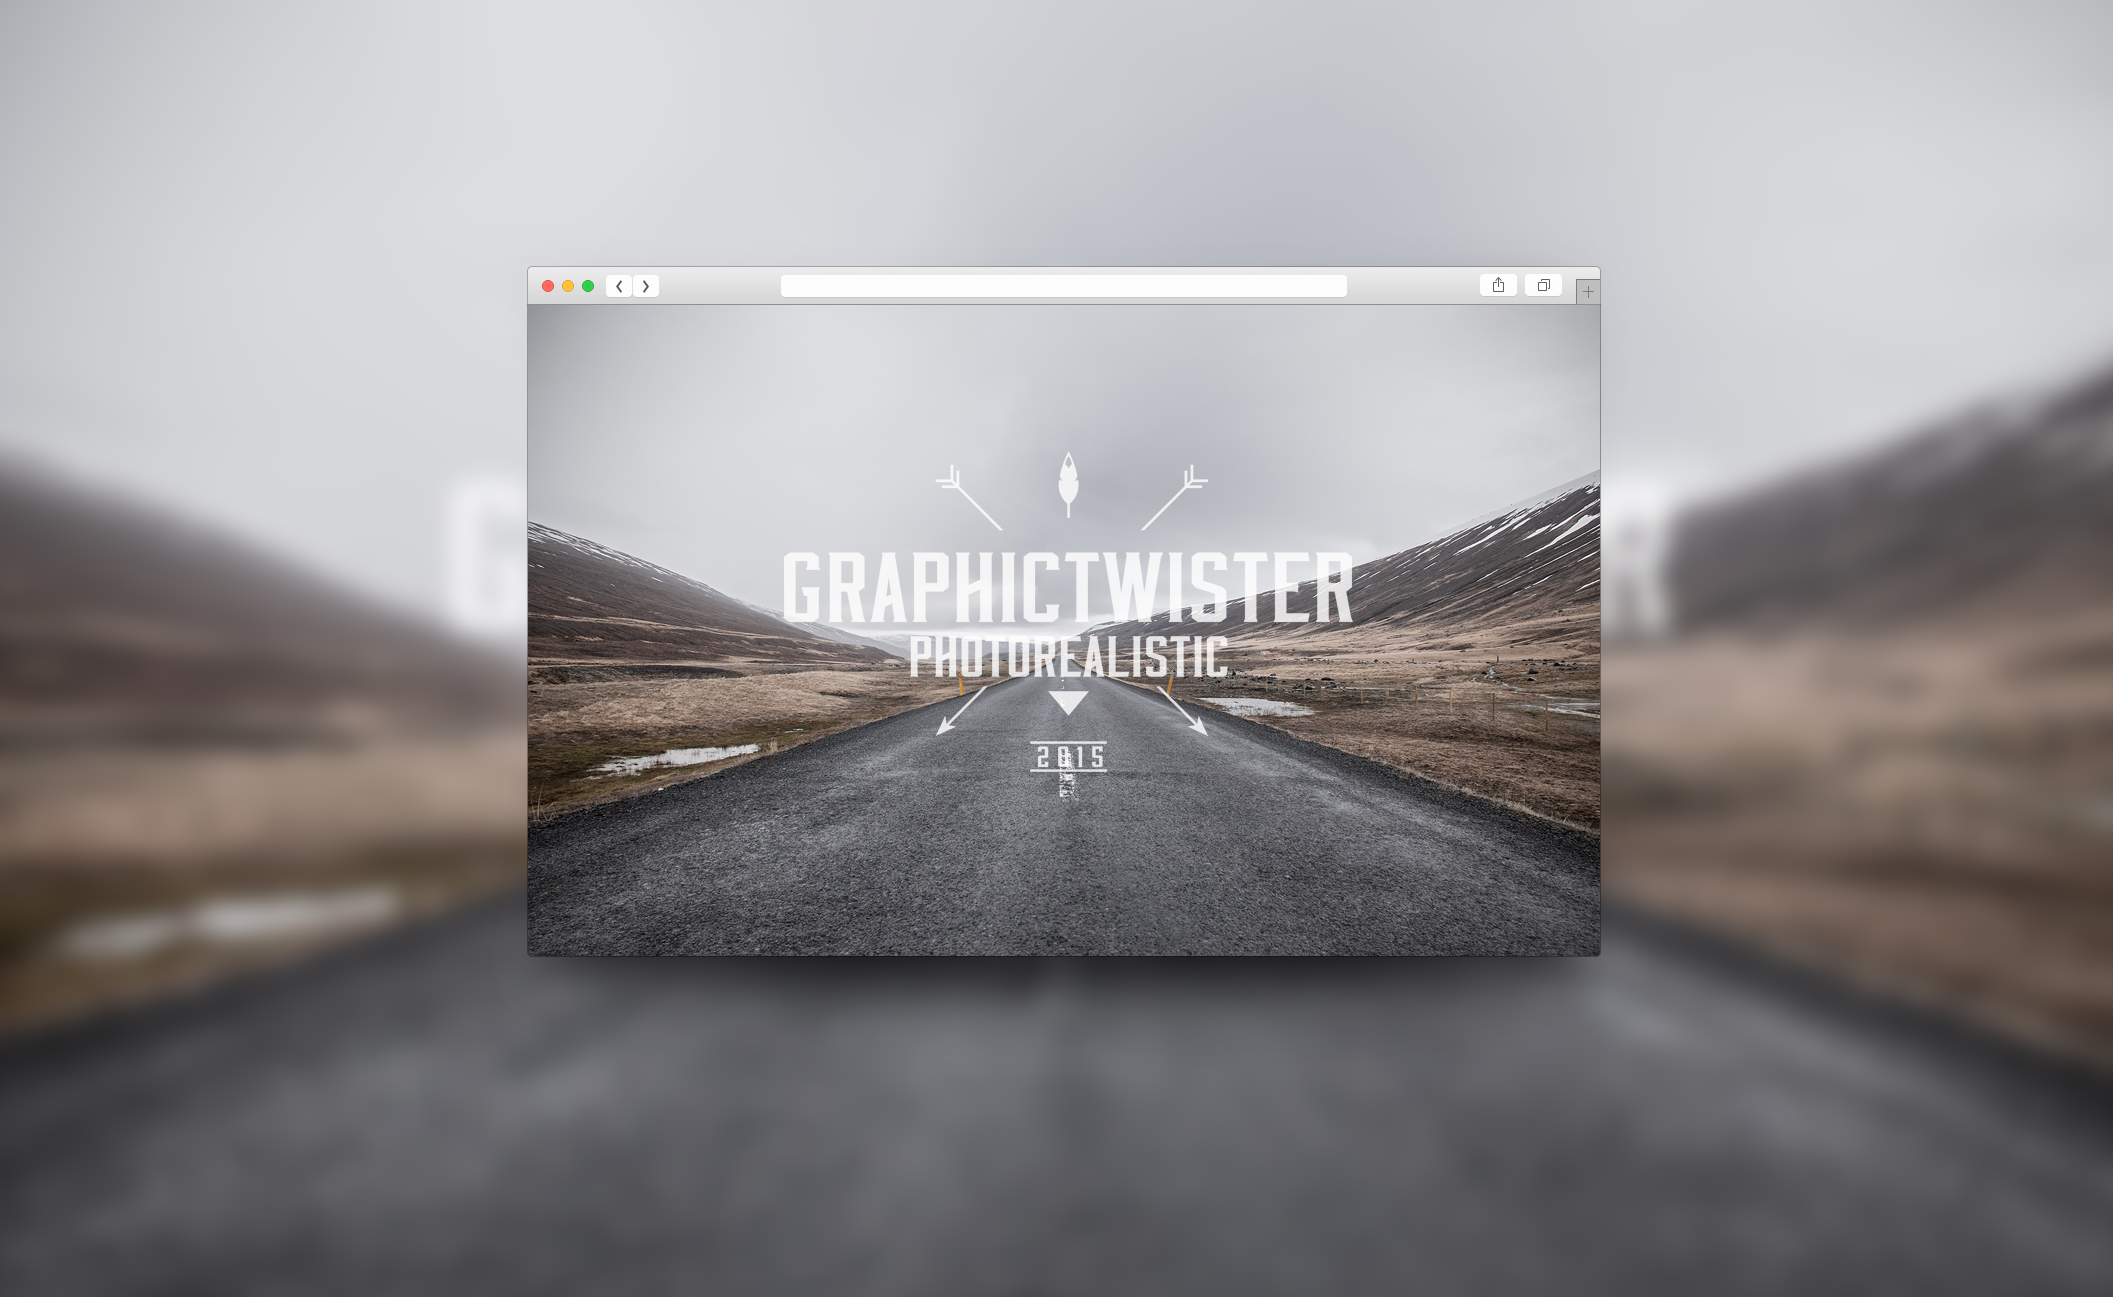 Safari-Browser-Template-blurred-background